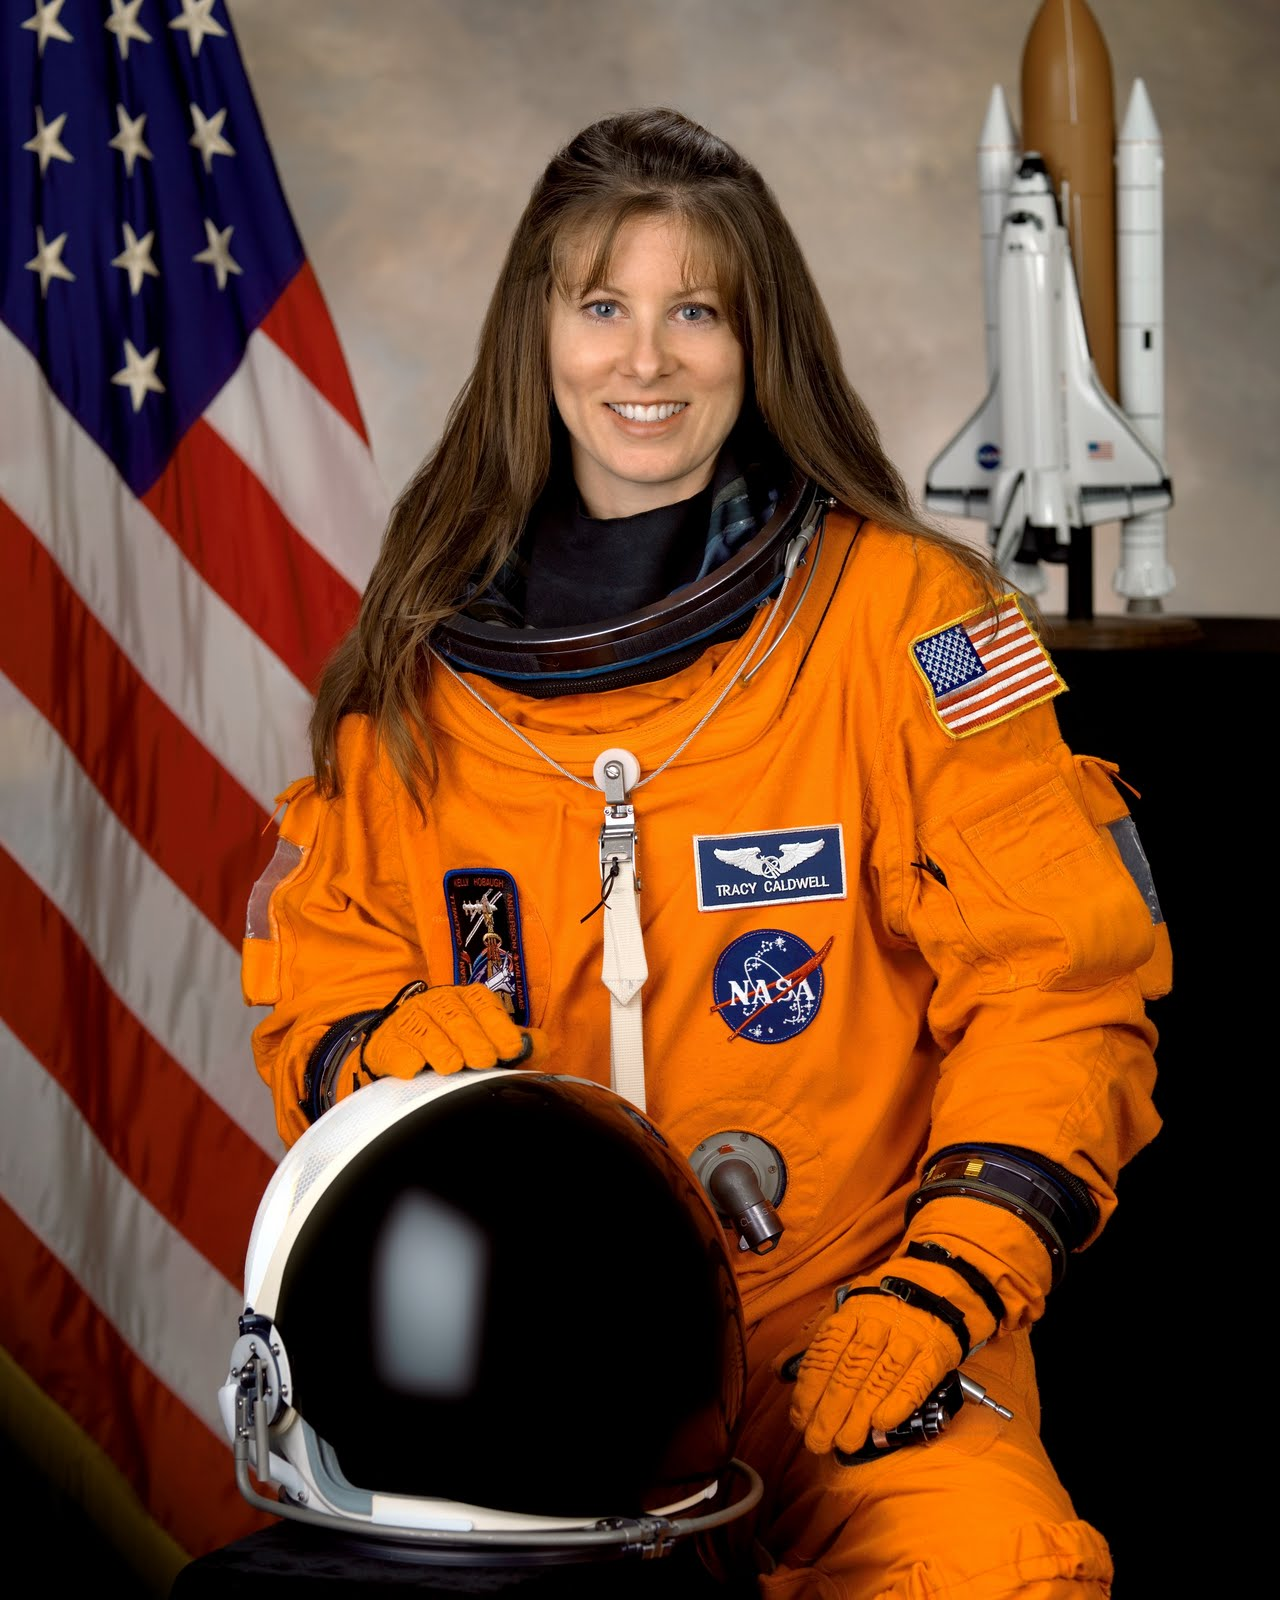 women of the space program astronauts - photo #3